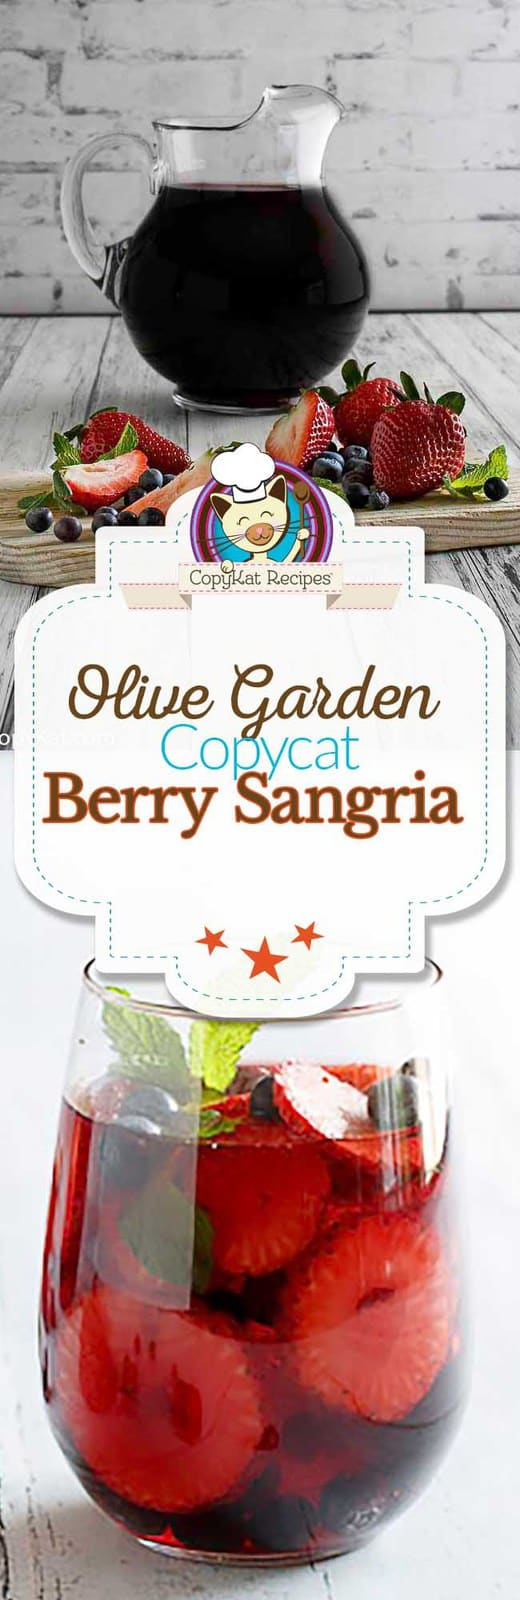 You can prepare Olive Garden Berry Sangria at home.